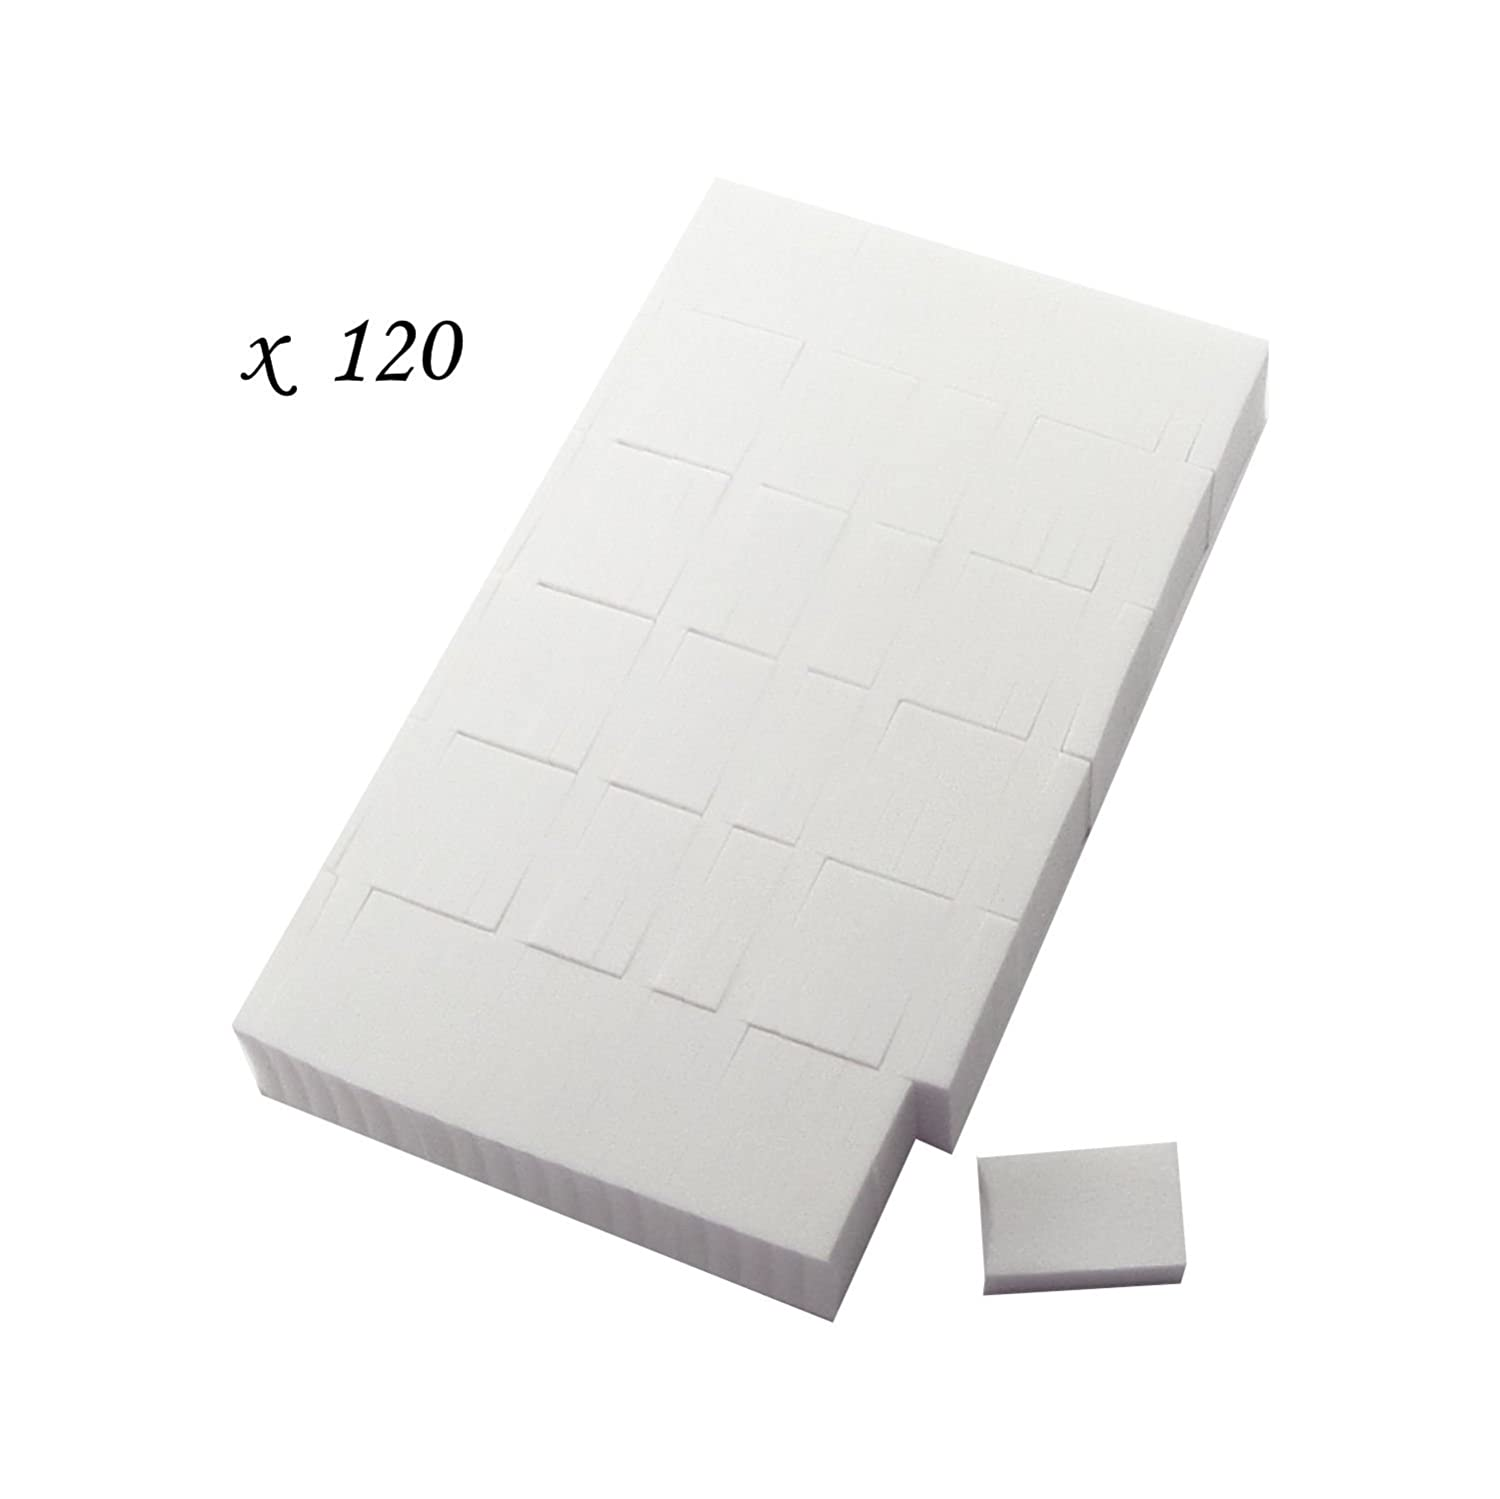 "120 Miniature Small White Rectangle Cosmetic Makeup Sponges/Applicators - 1.25"" x 1"""